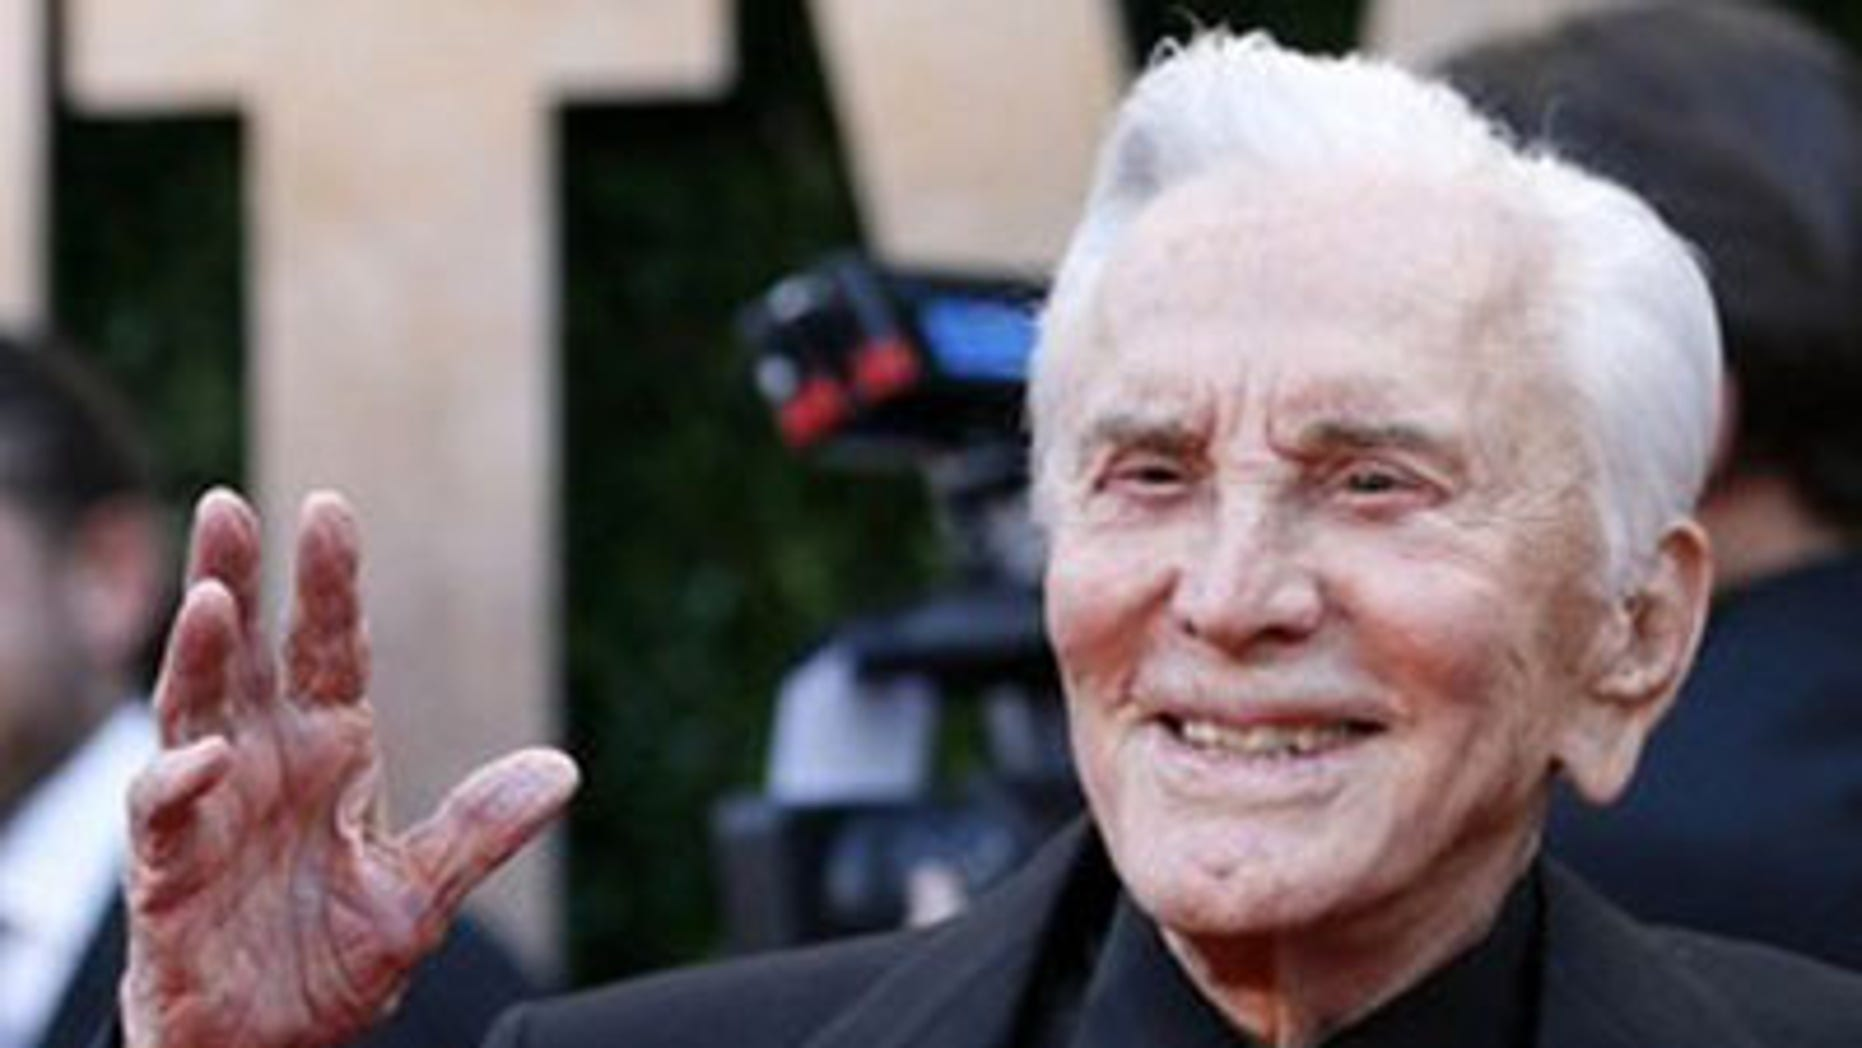 Kirk Douglas arrives at the 2010 Vanity Fair Oscar party in West Hollywood, California March 7, 2010. (REUTERS)